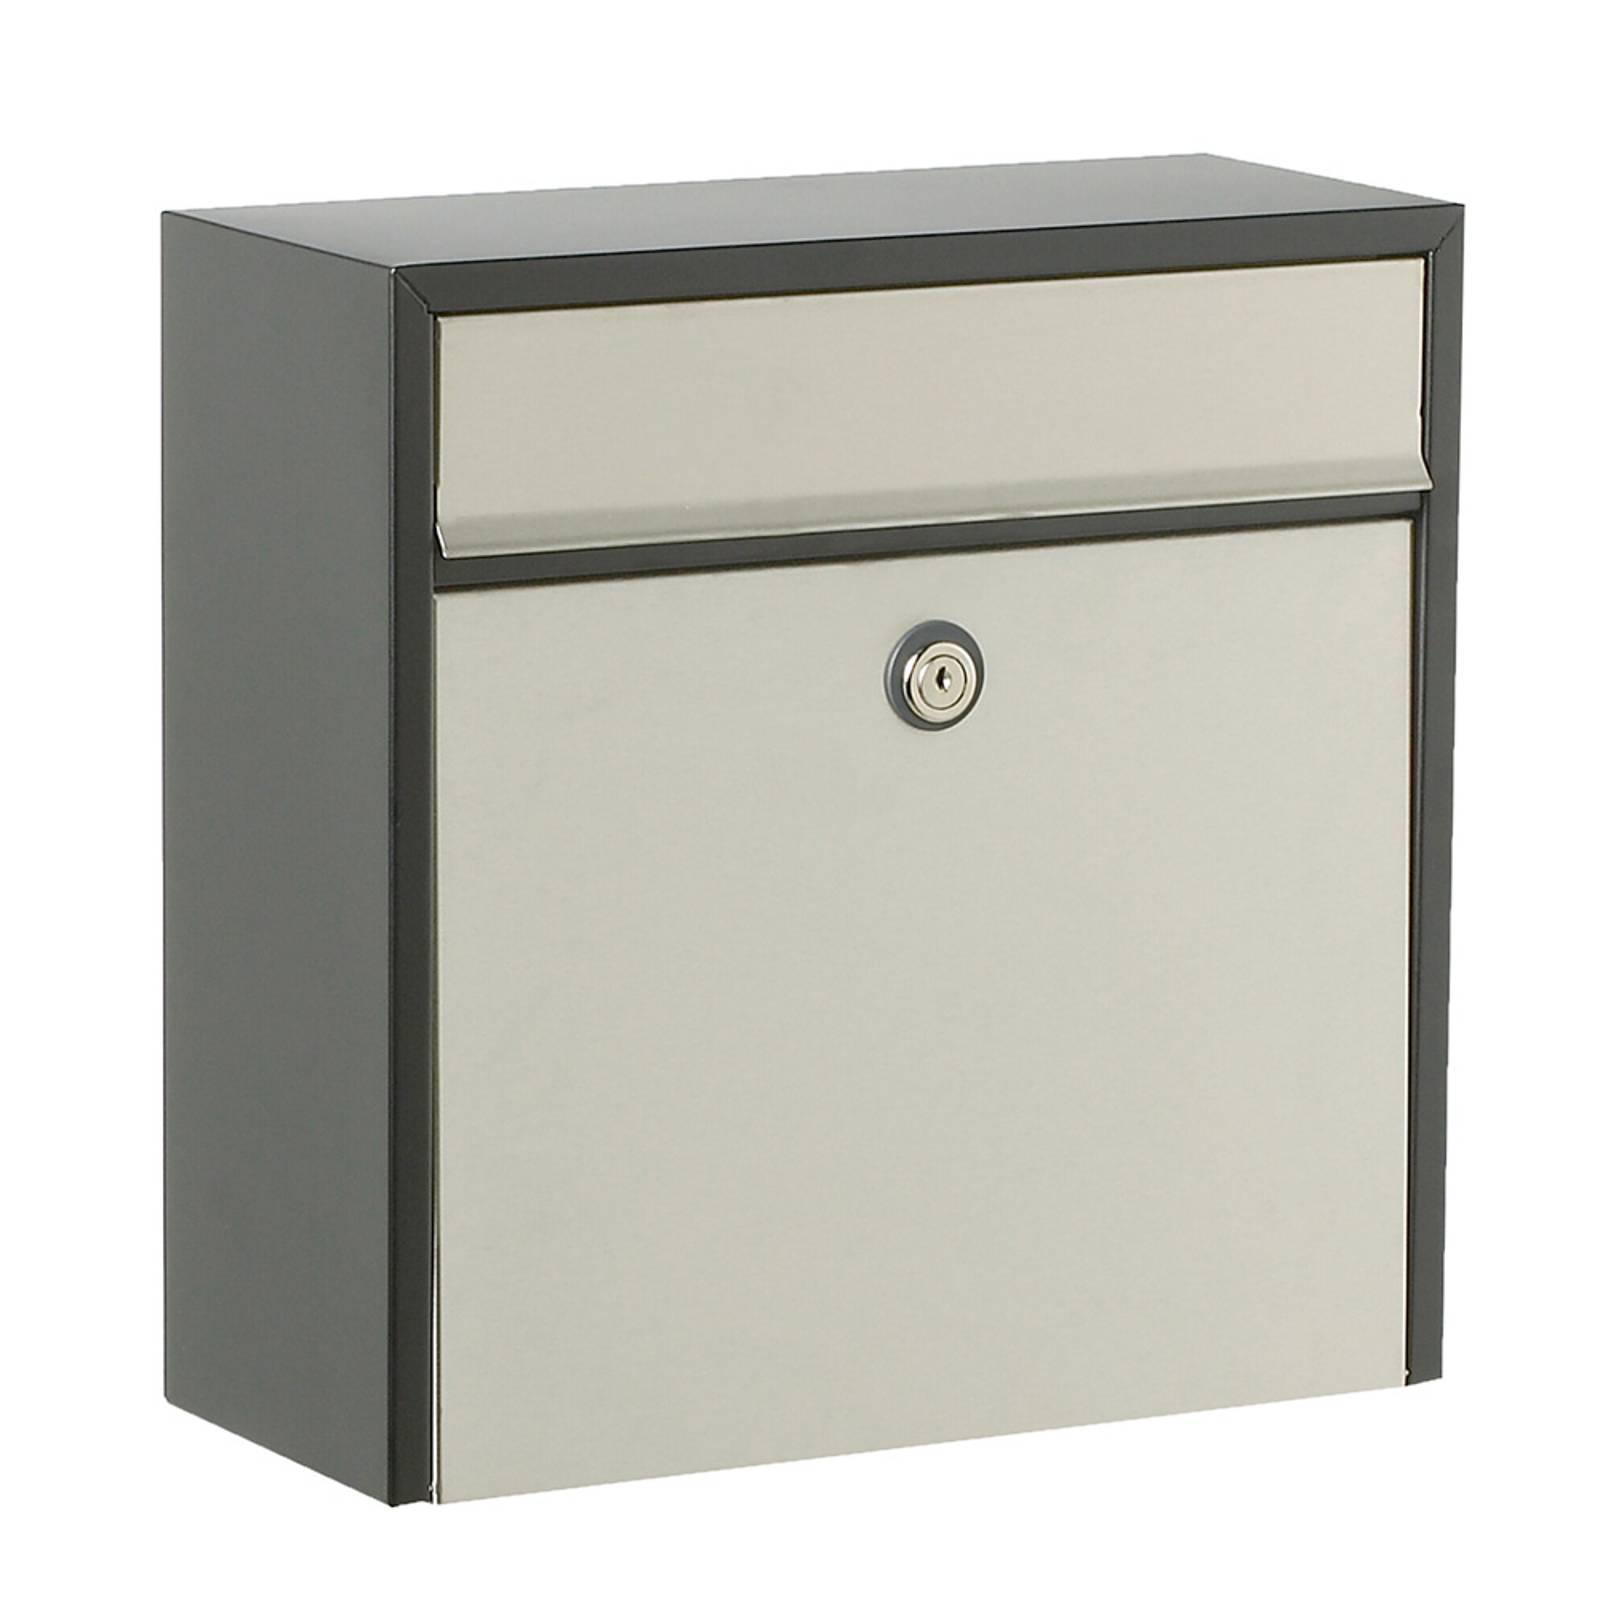 Wall letterbox 250 in elegant design from Juliana